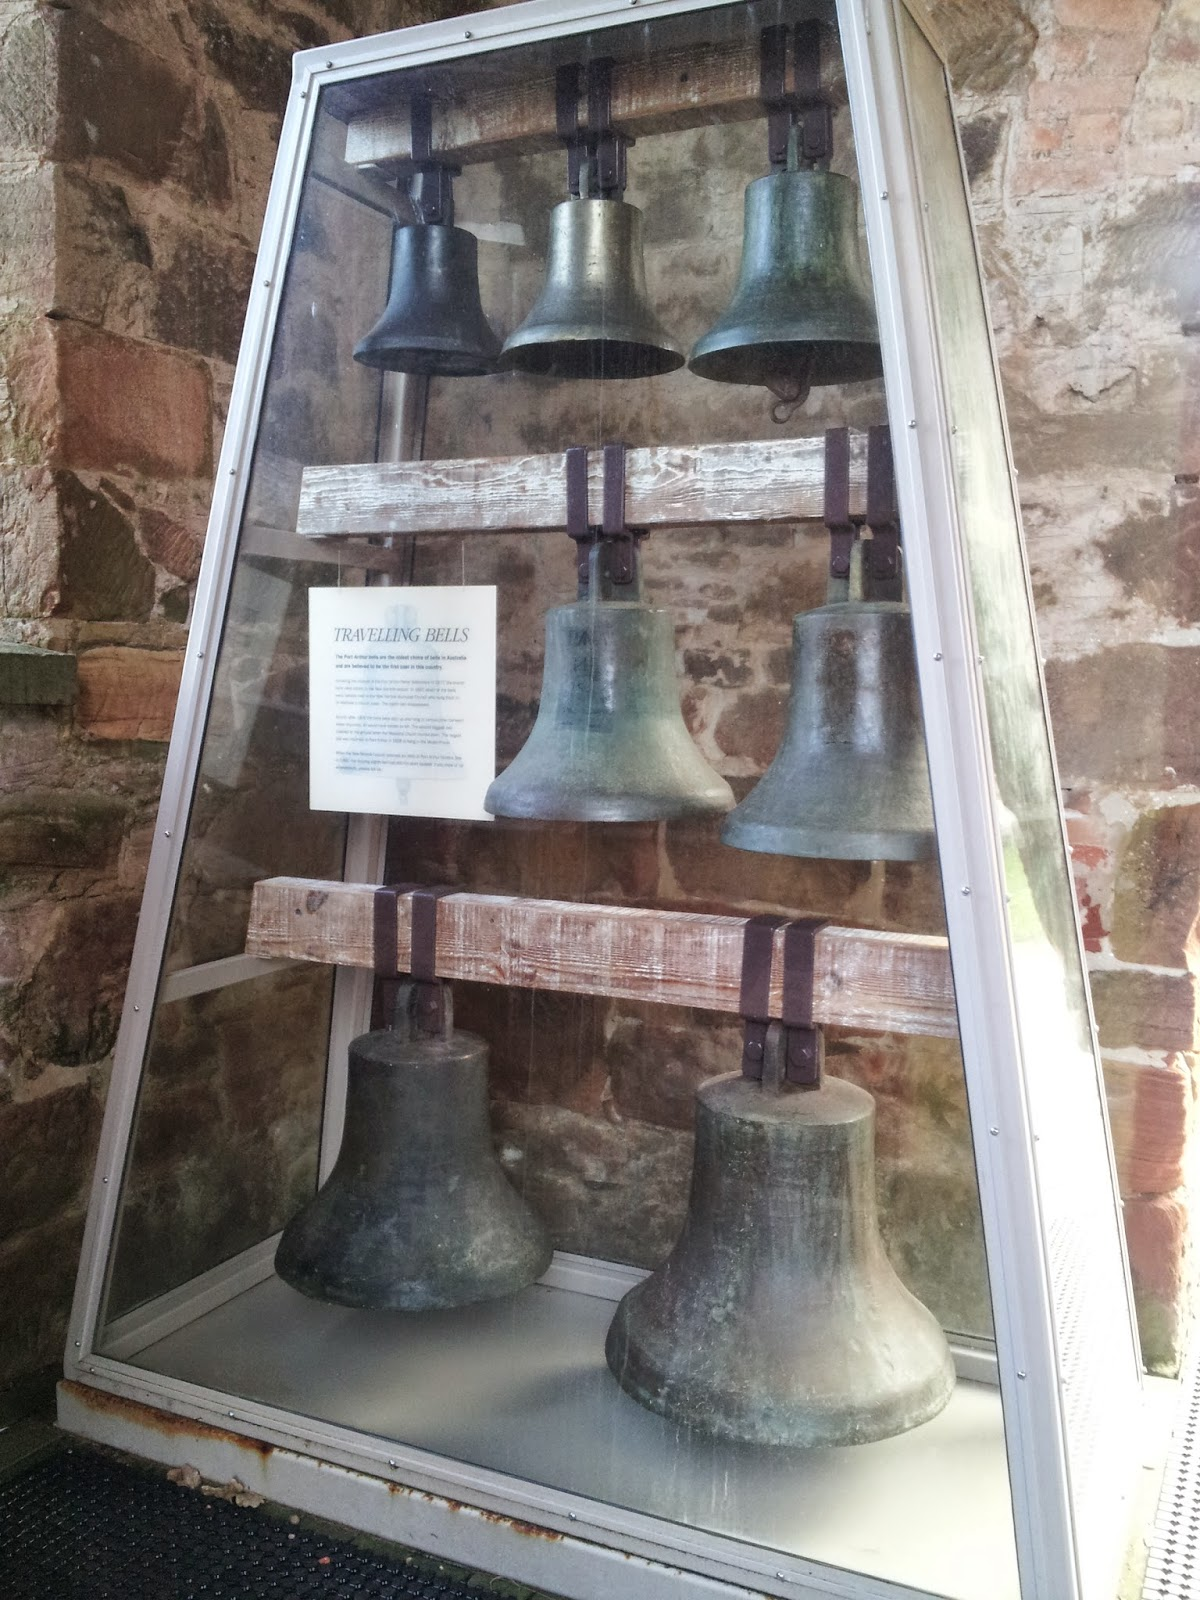 8 bells in a display case at Port Arthur